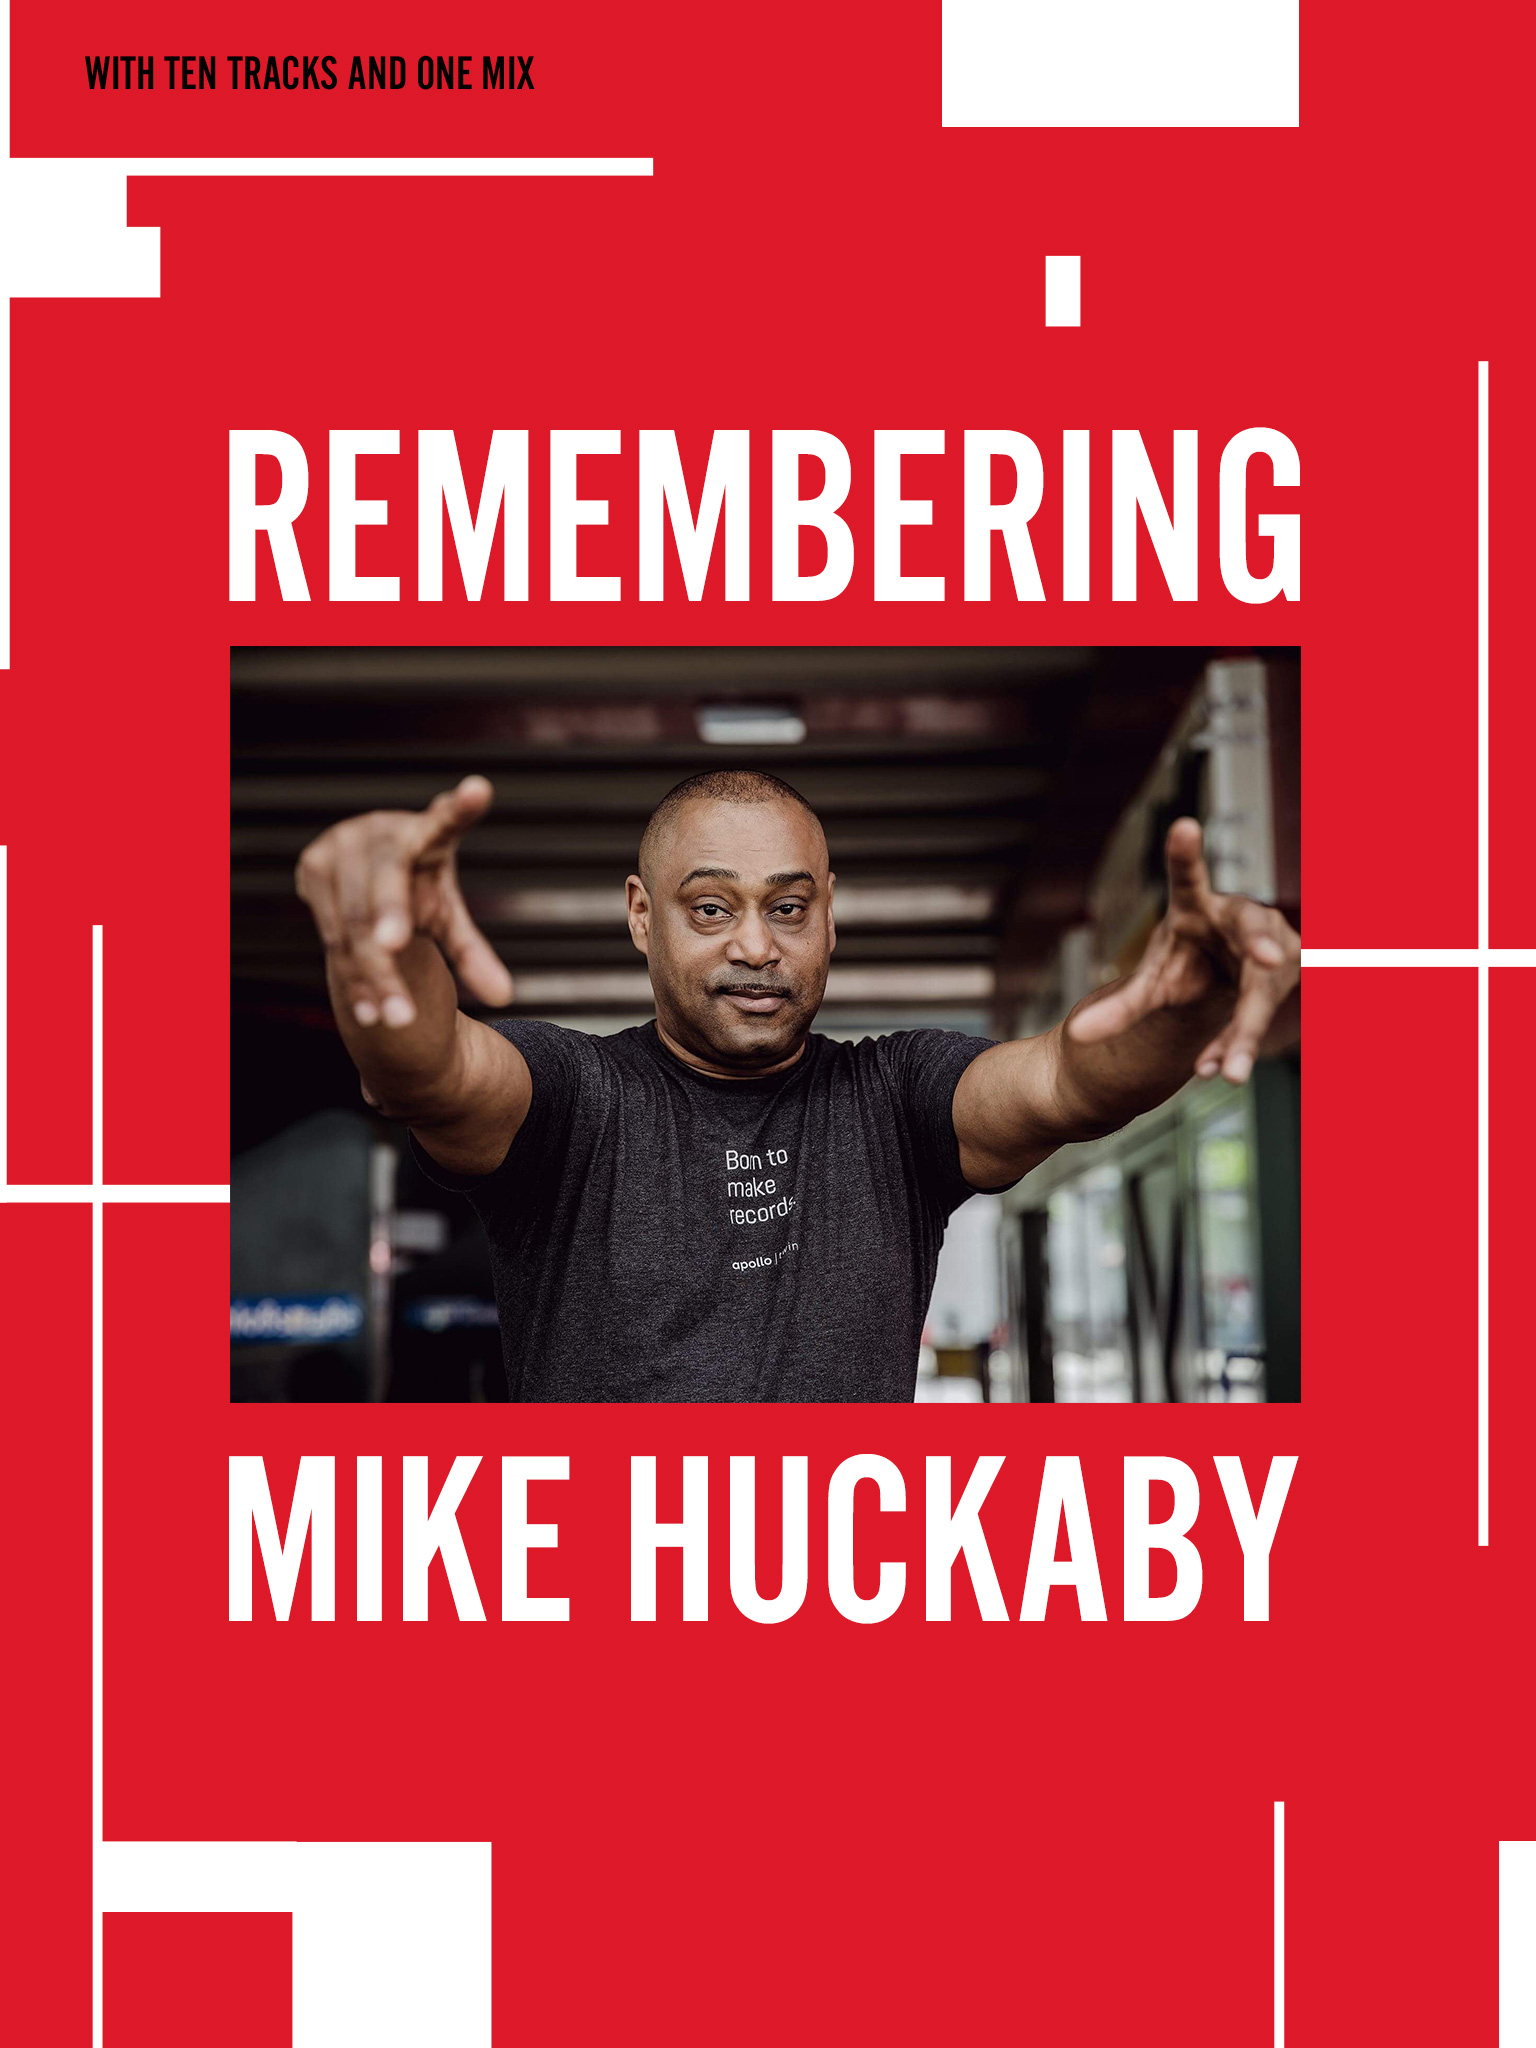 Remembering Mike Huckaby: Ten Tracks And One Mix